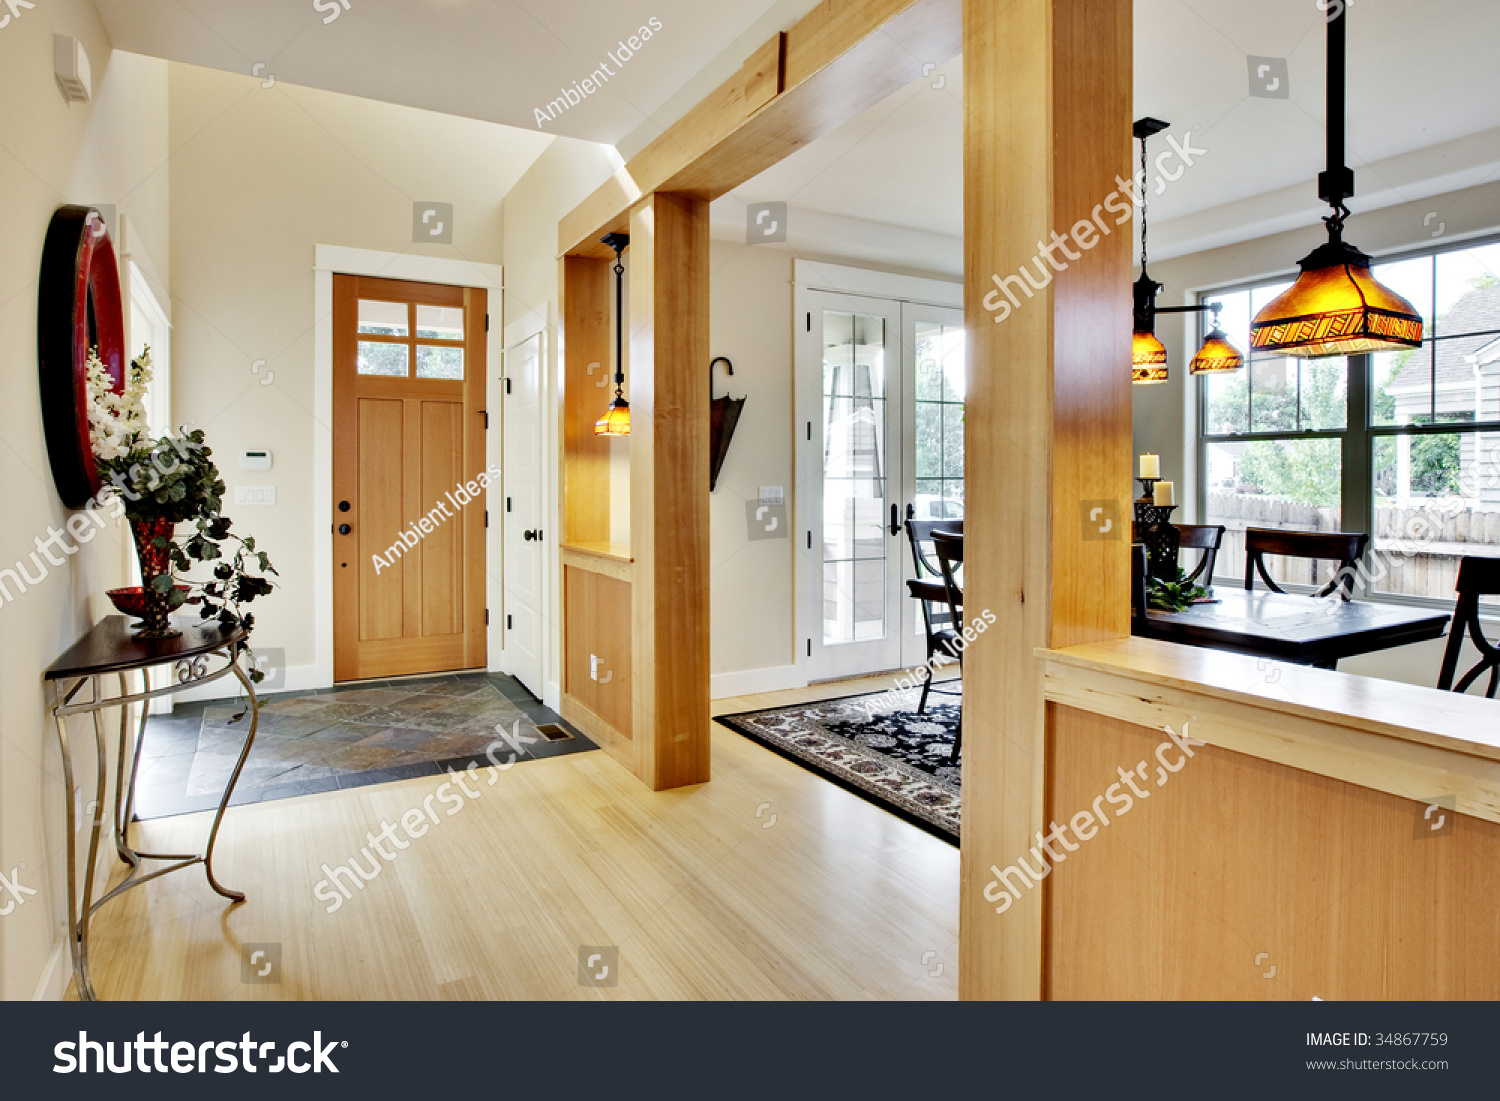 Wide view home entrance hallway dining stock photo for Dining room entrance